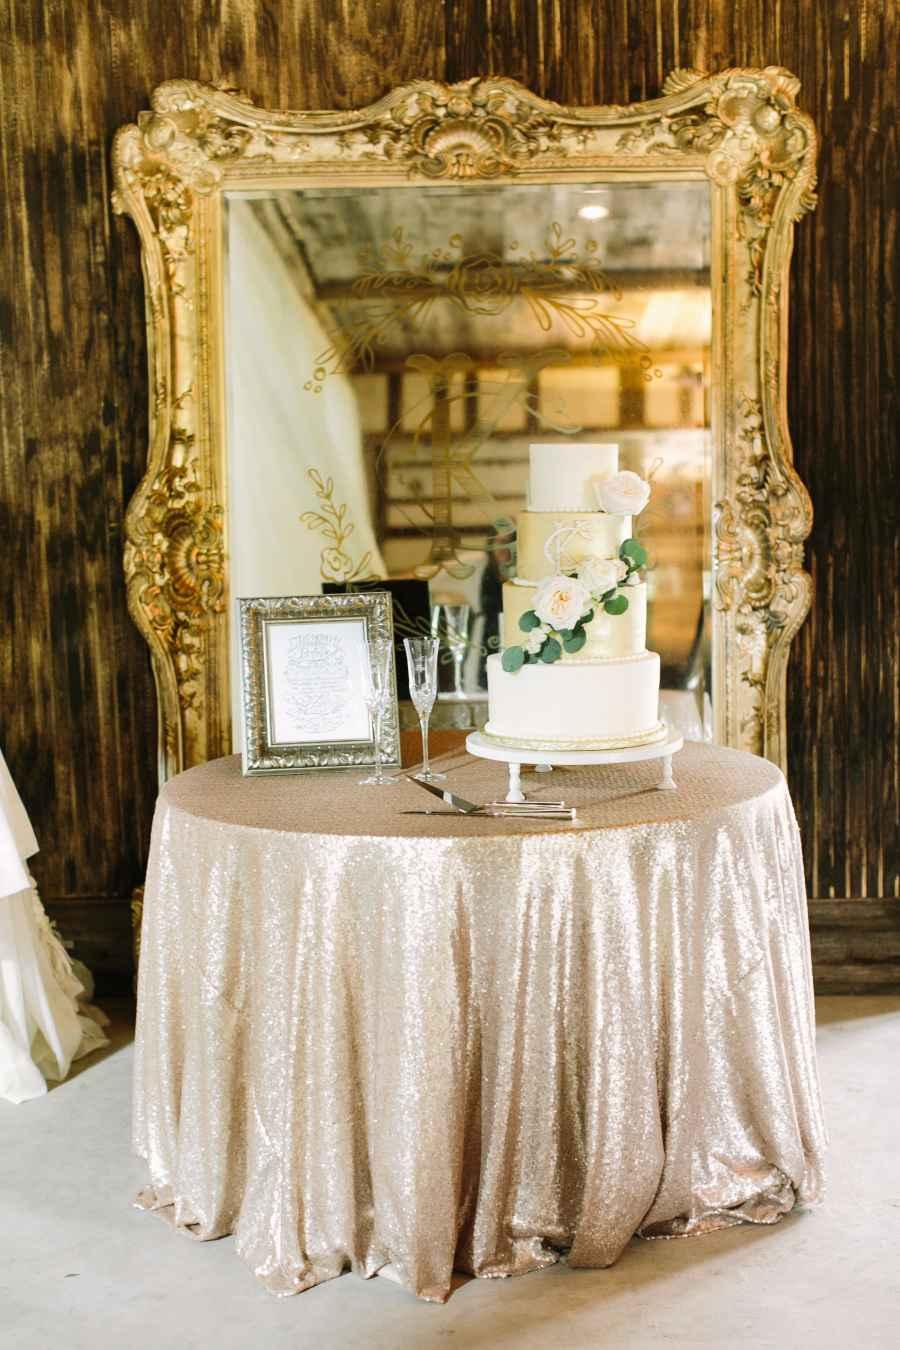 Golden wedding decoration: 60 ideas with photos to inspire 15